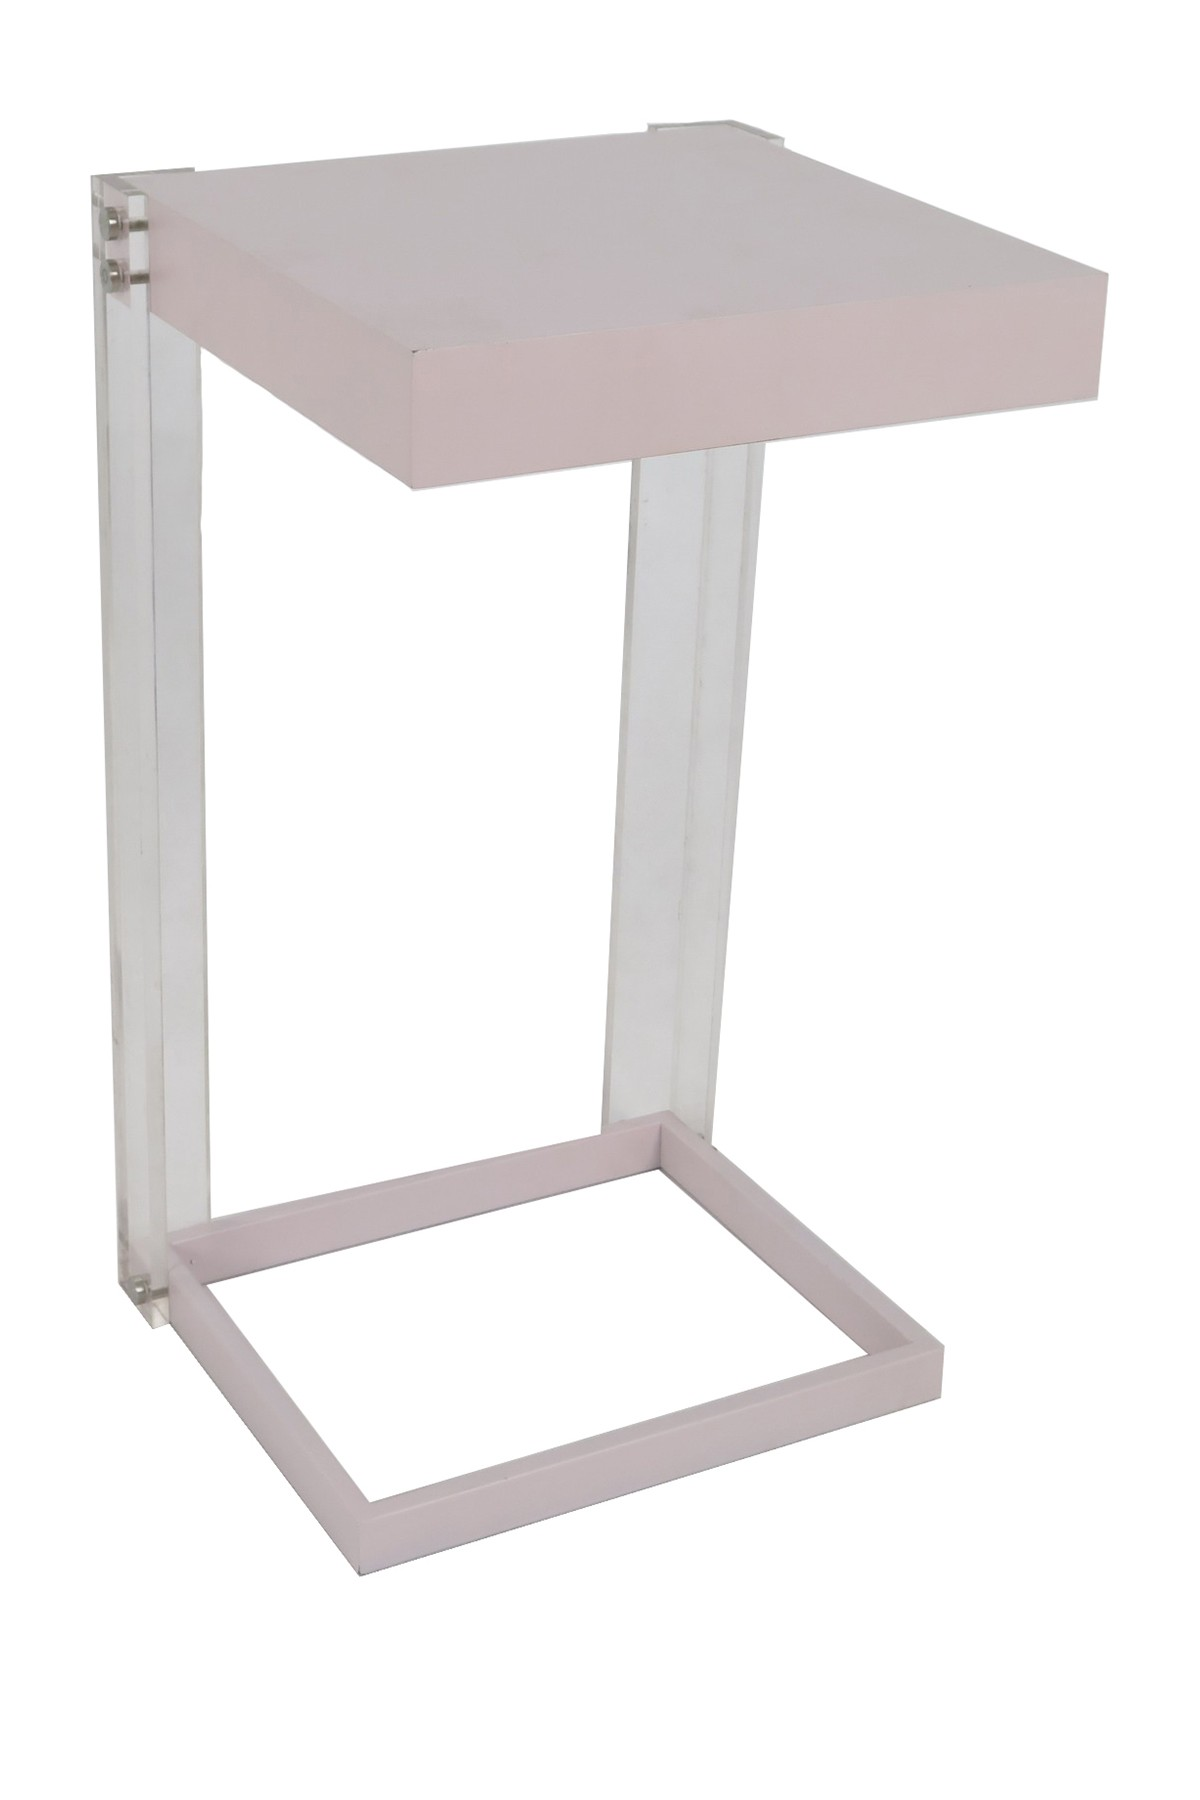 acrylic wood light pink floating accent table sagebrook home ikea storage bins target chaise lounge cushions coffee clearance round patio chair very narrow transition pieces for